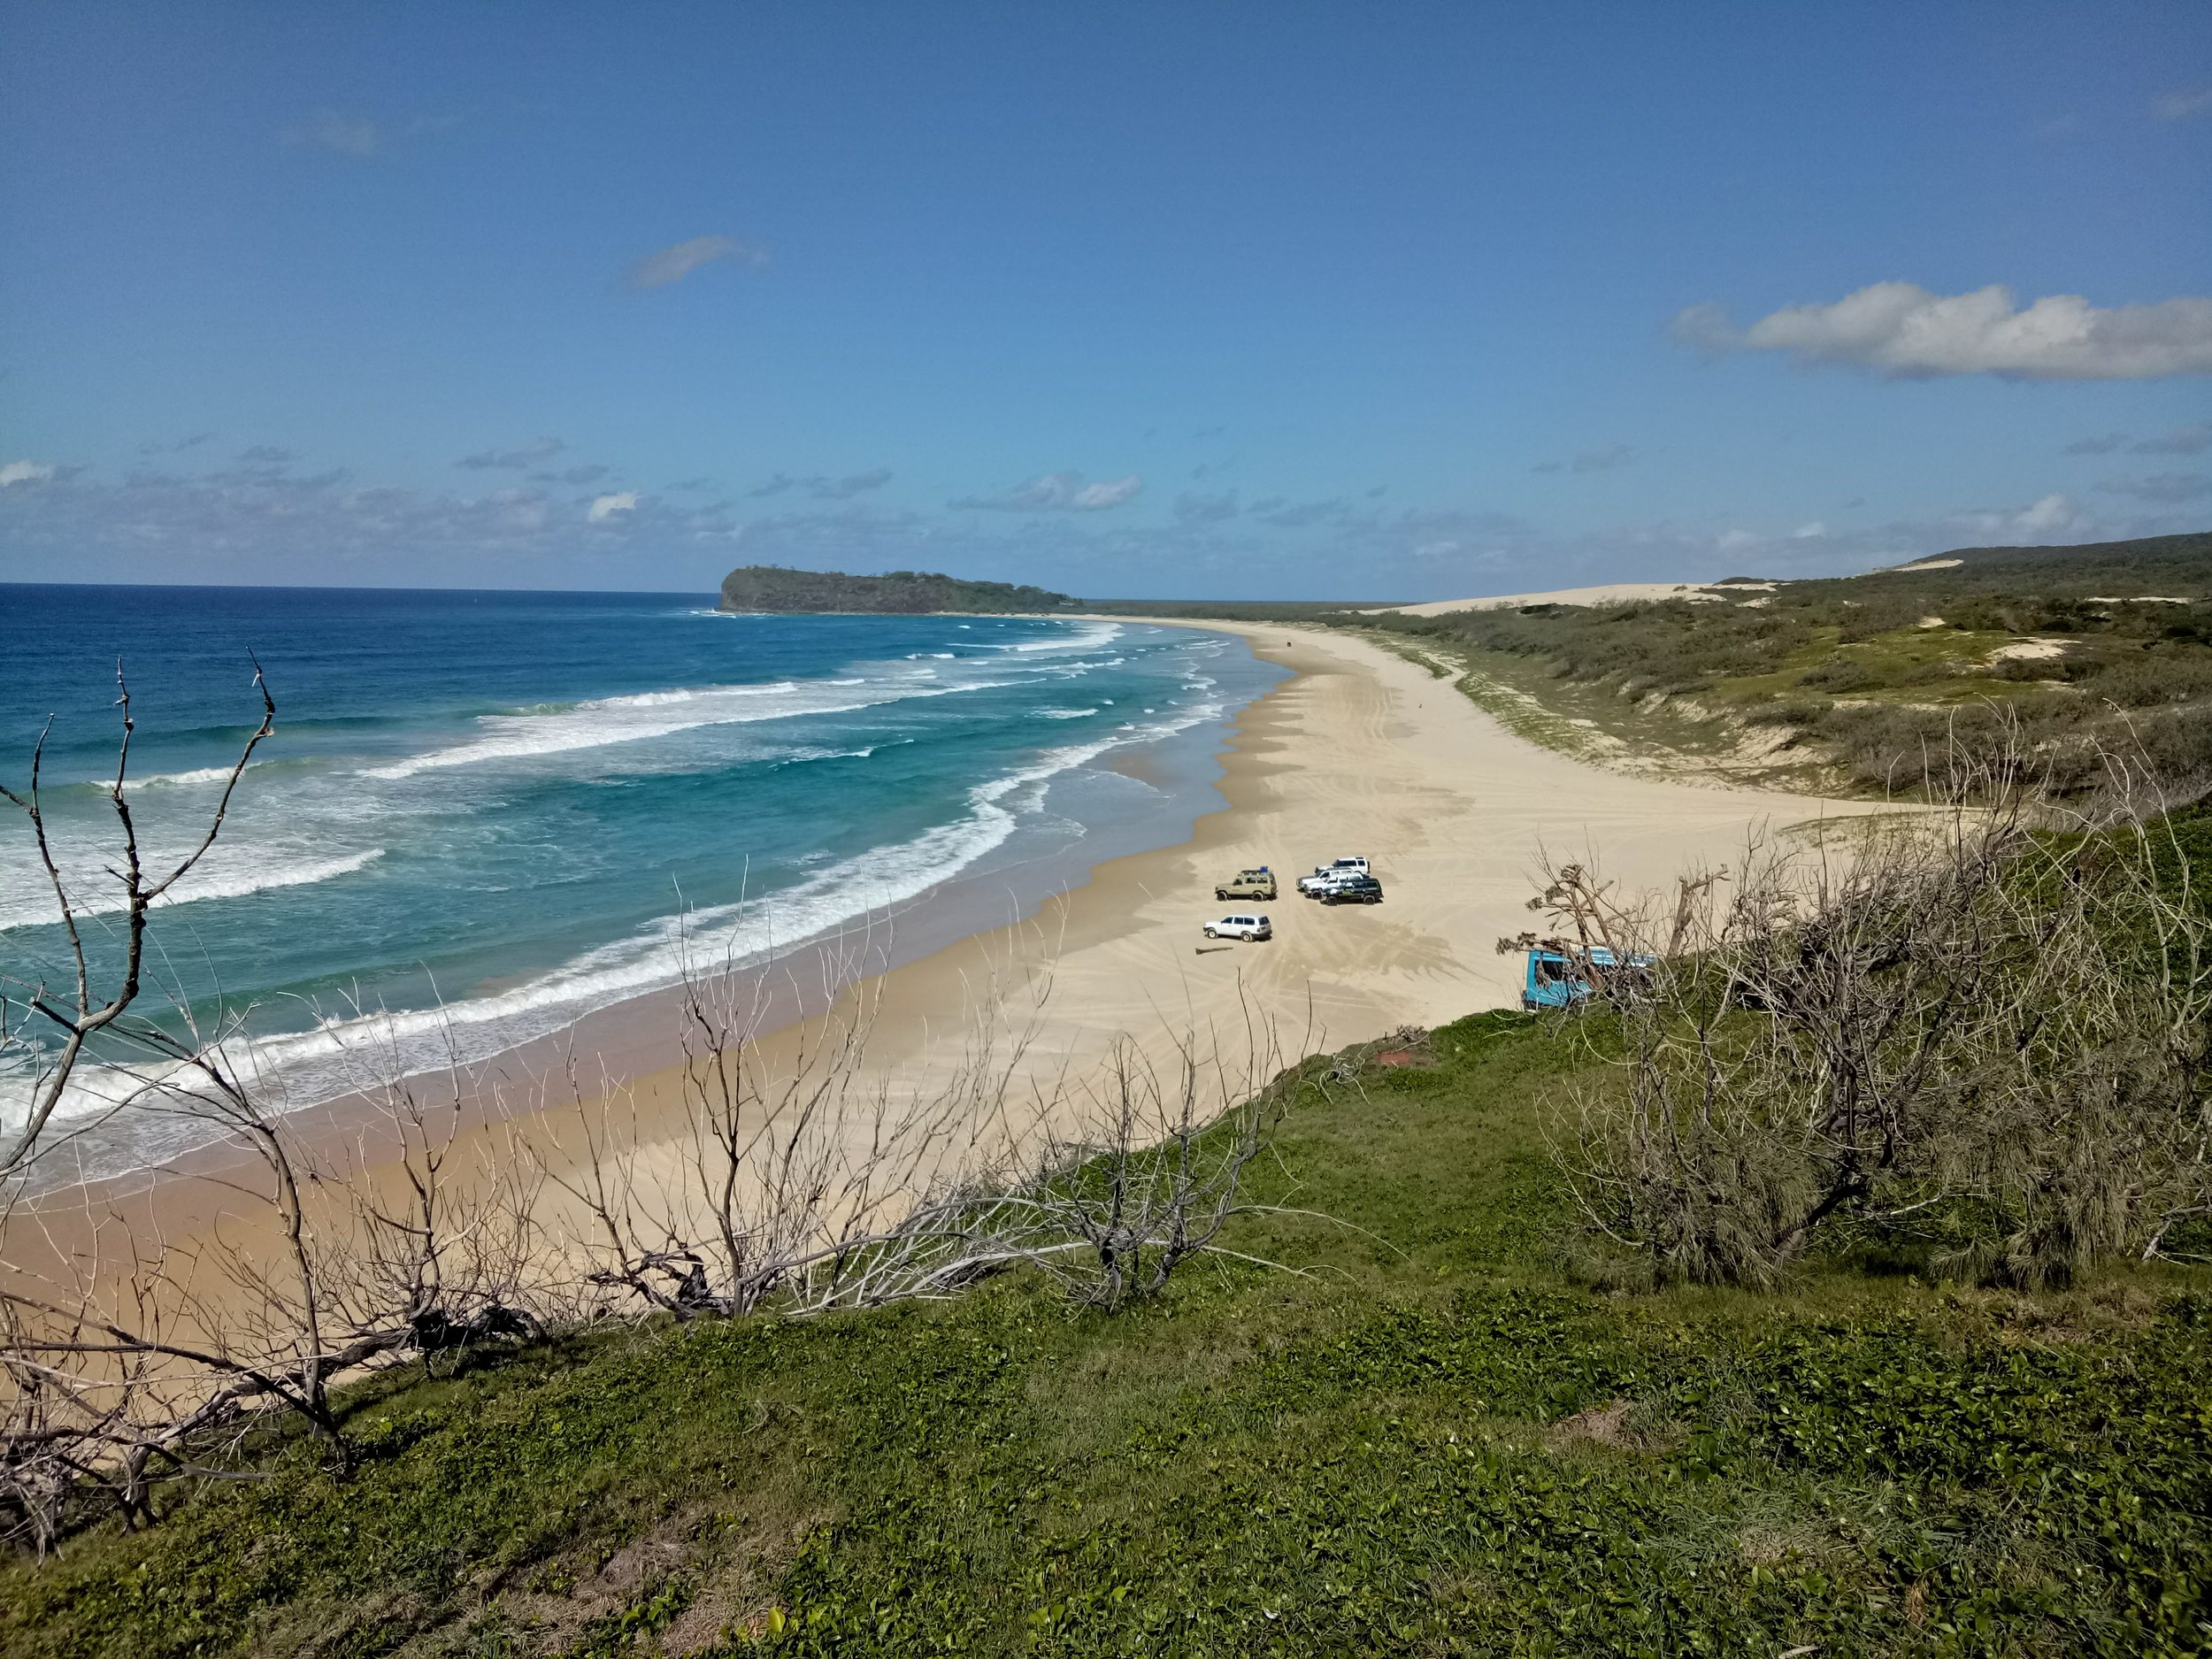 Fraser Island View of Indian Head